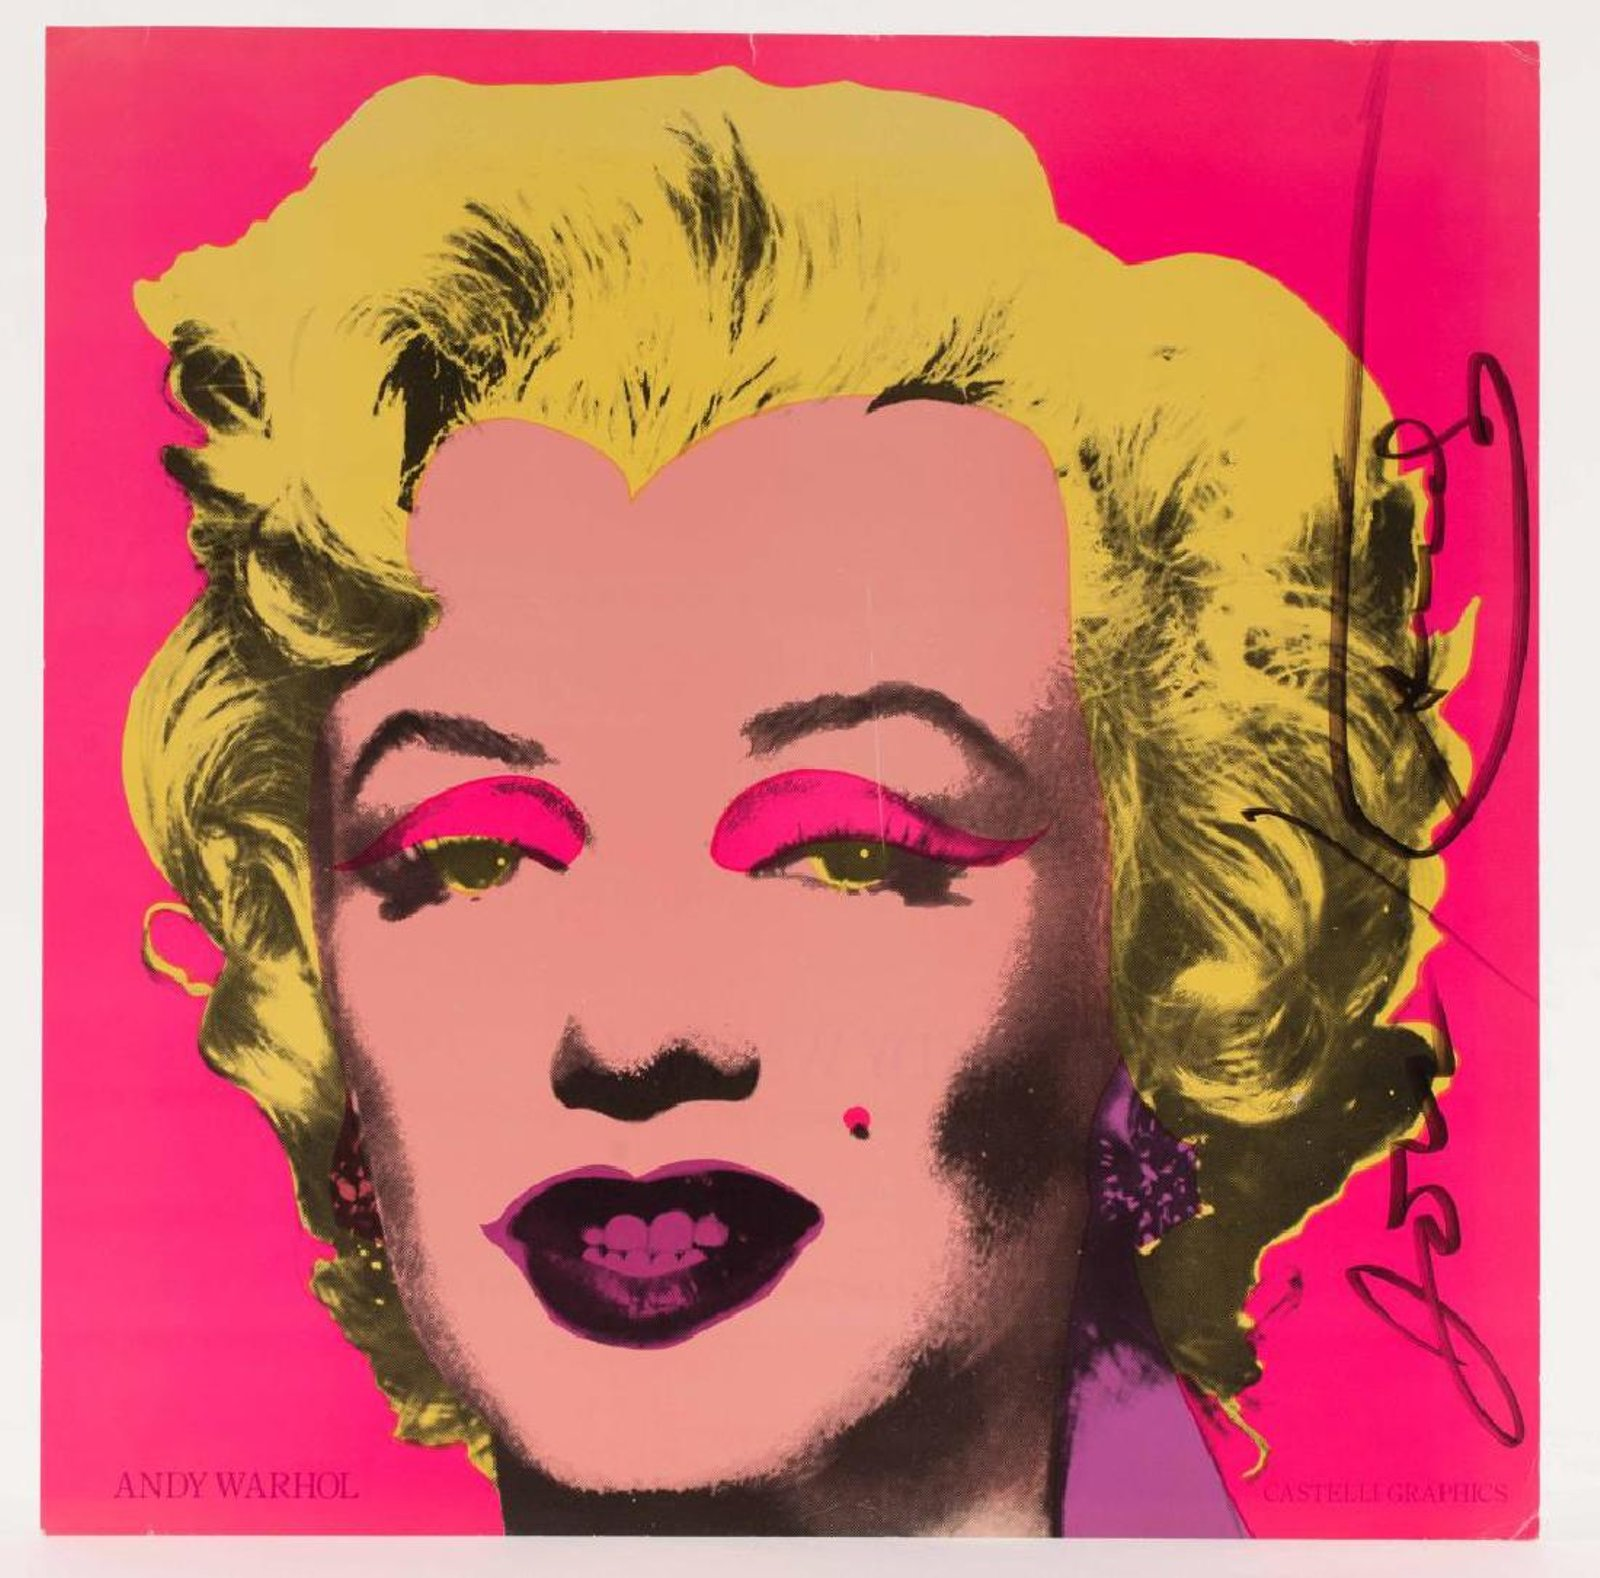 Invitation to the Factory Editions event, Andy Warhol, A Print Retrospective, 1963-1981, which ran Dec.-Nov. 1981 in New York, with his iconic Marilyn, 1967 image